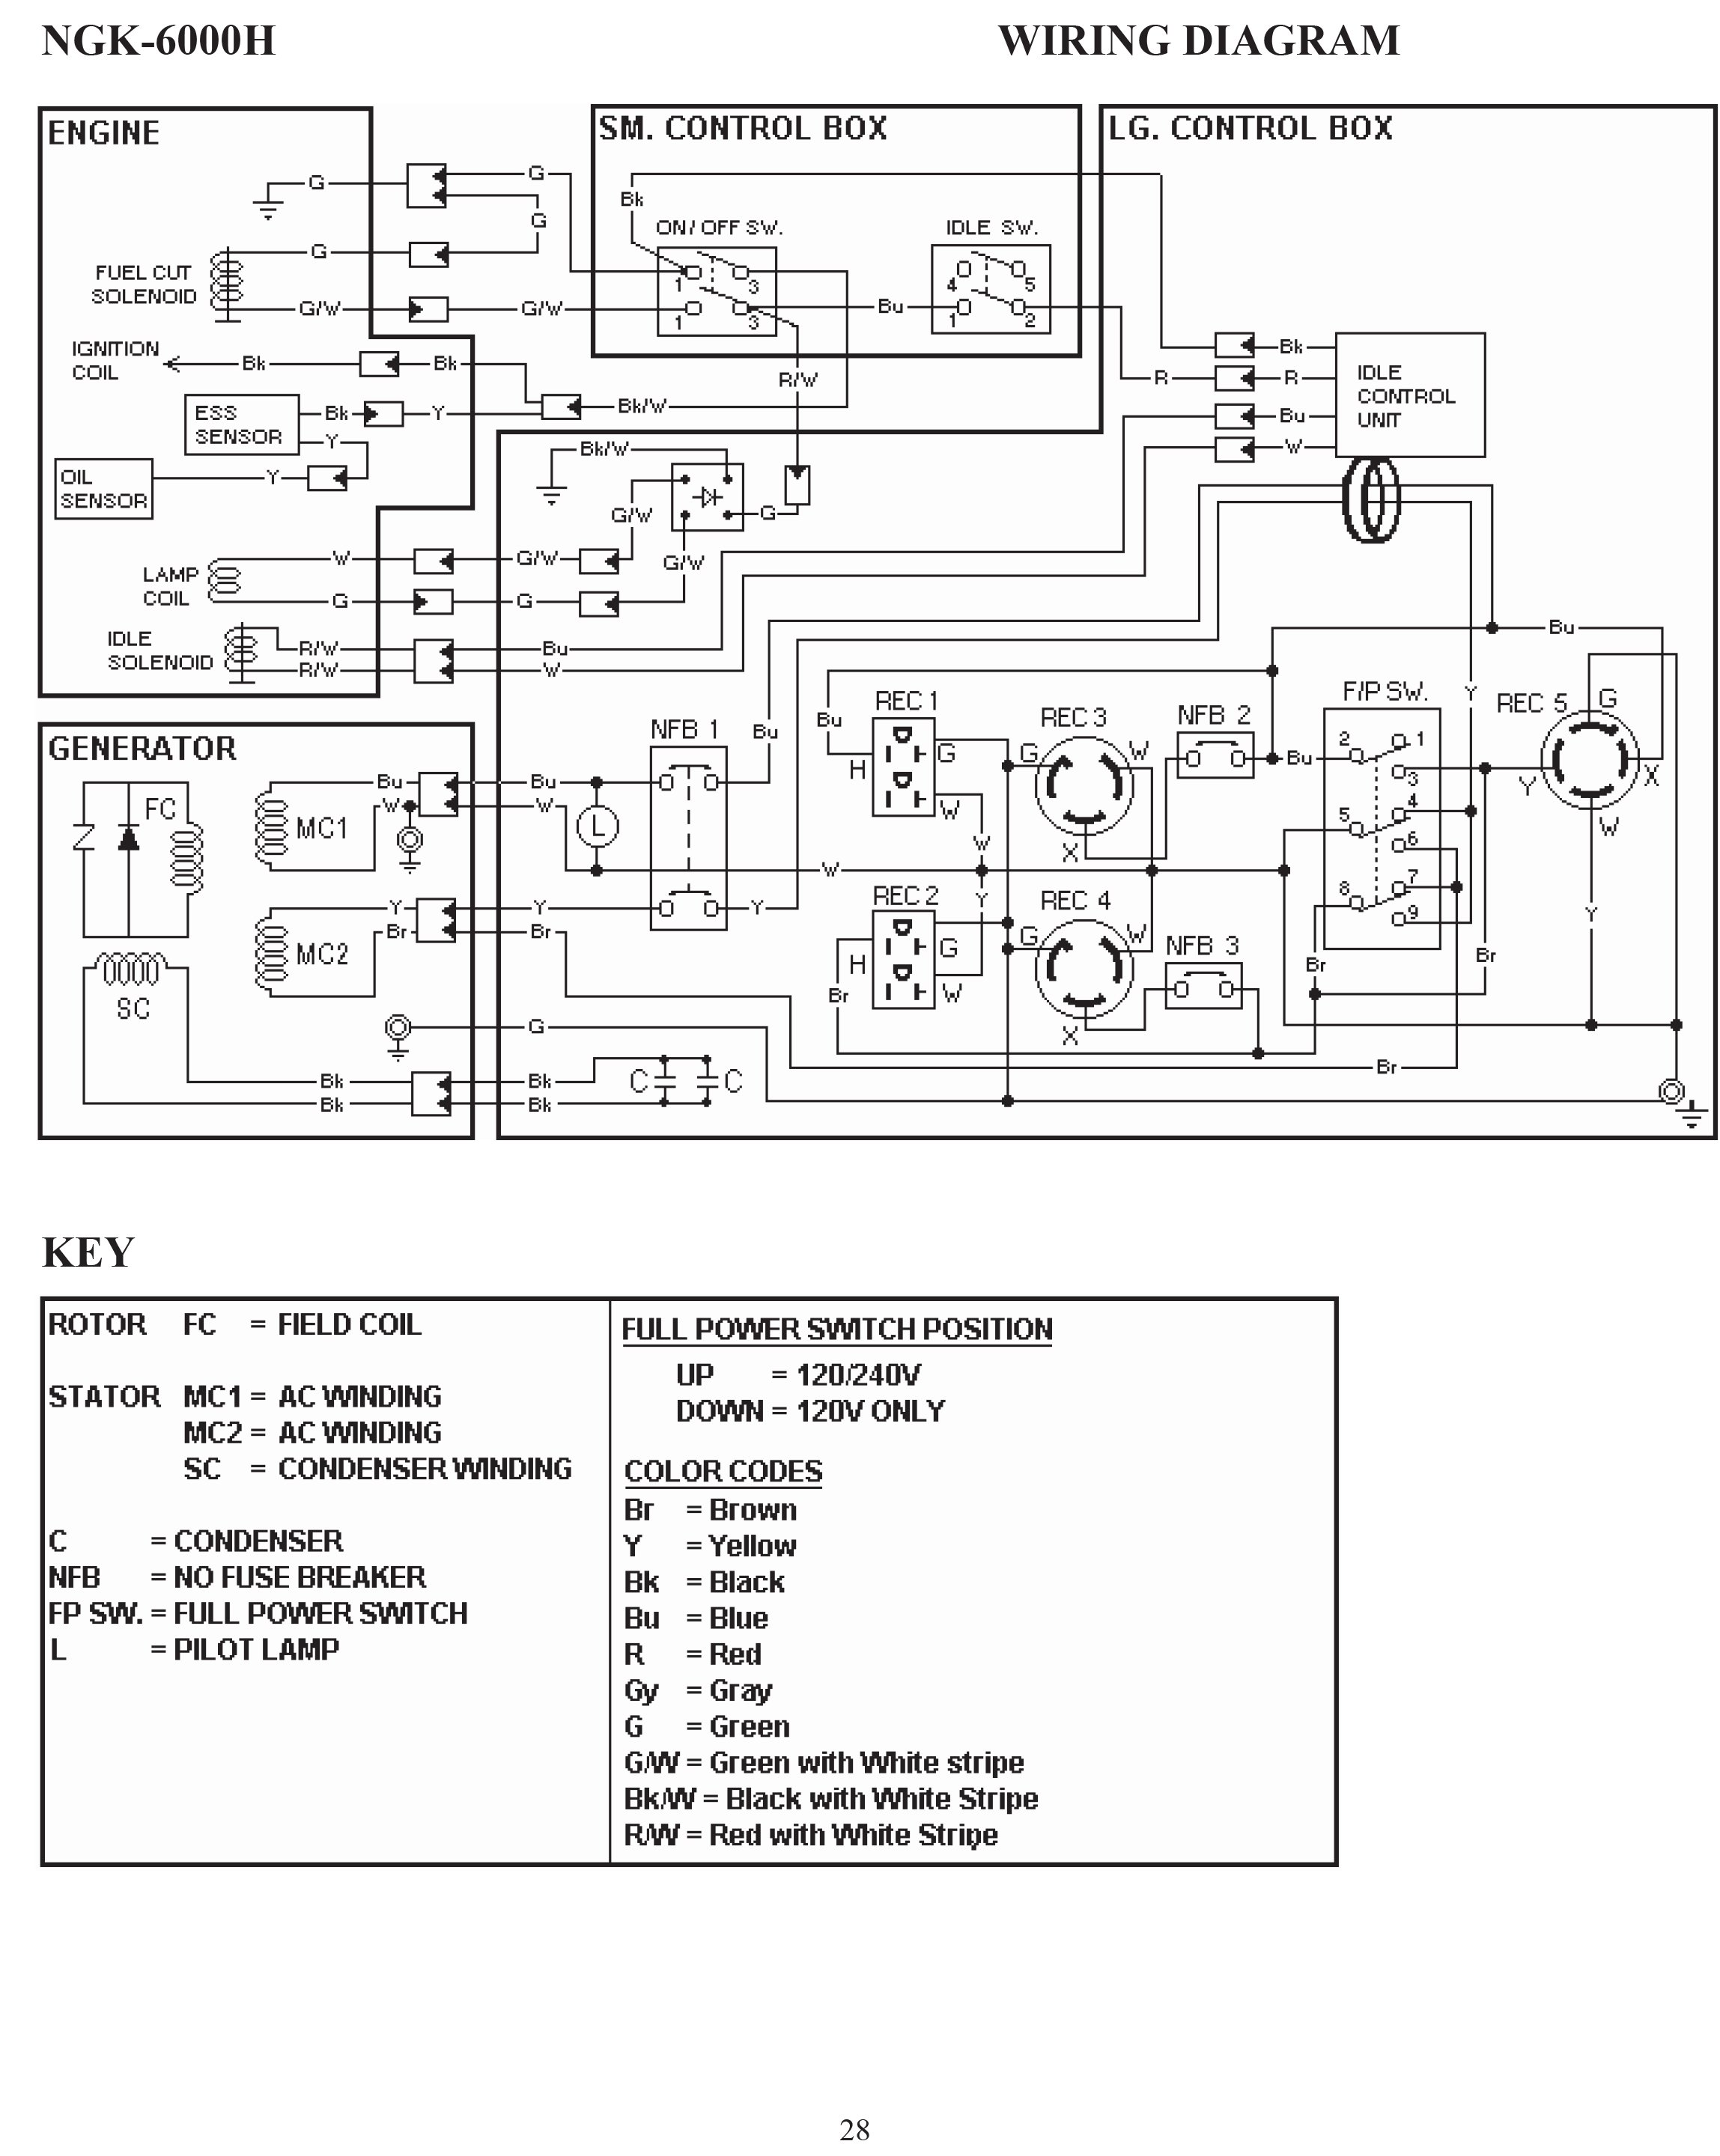 2013 11 06_014756_ngk generator honda engine wiring diagram hank, i see your reply to the problem with the dewalt dg6000 from dewalt drill switch wiring diagrams at honlapkeszites.co